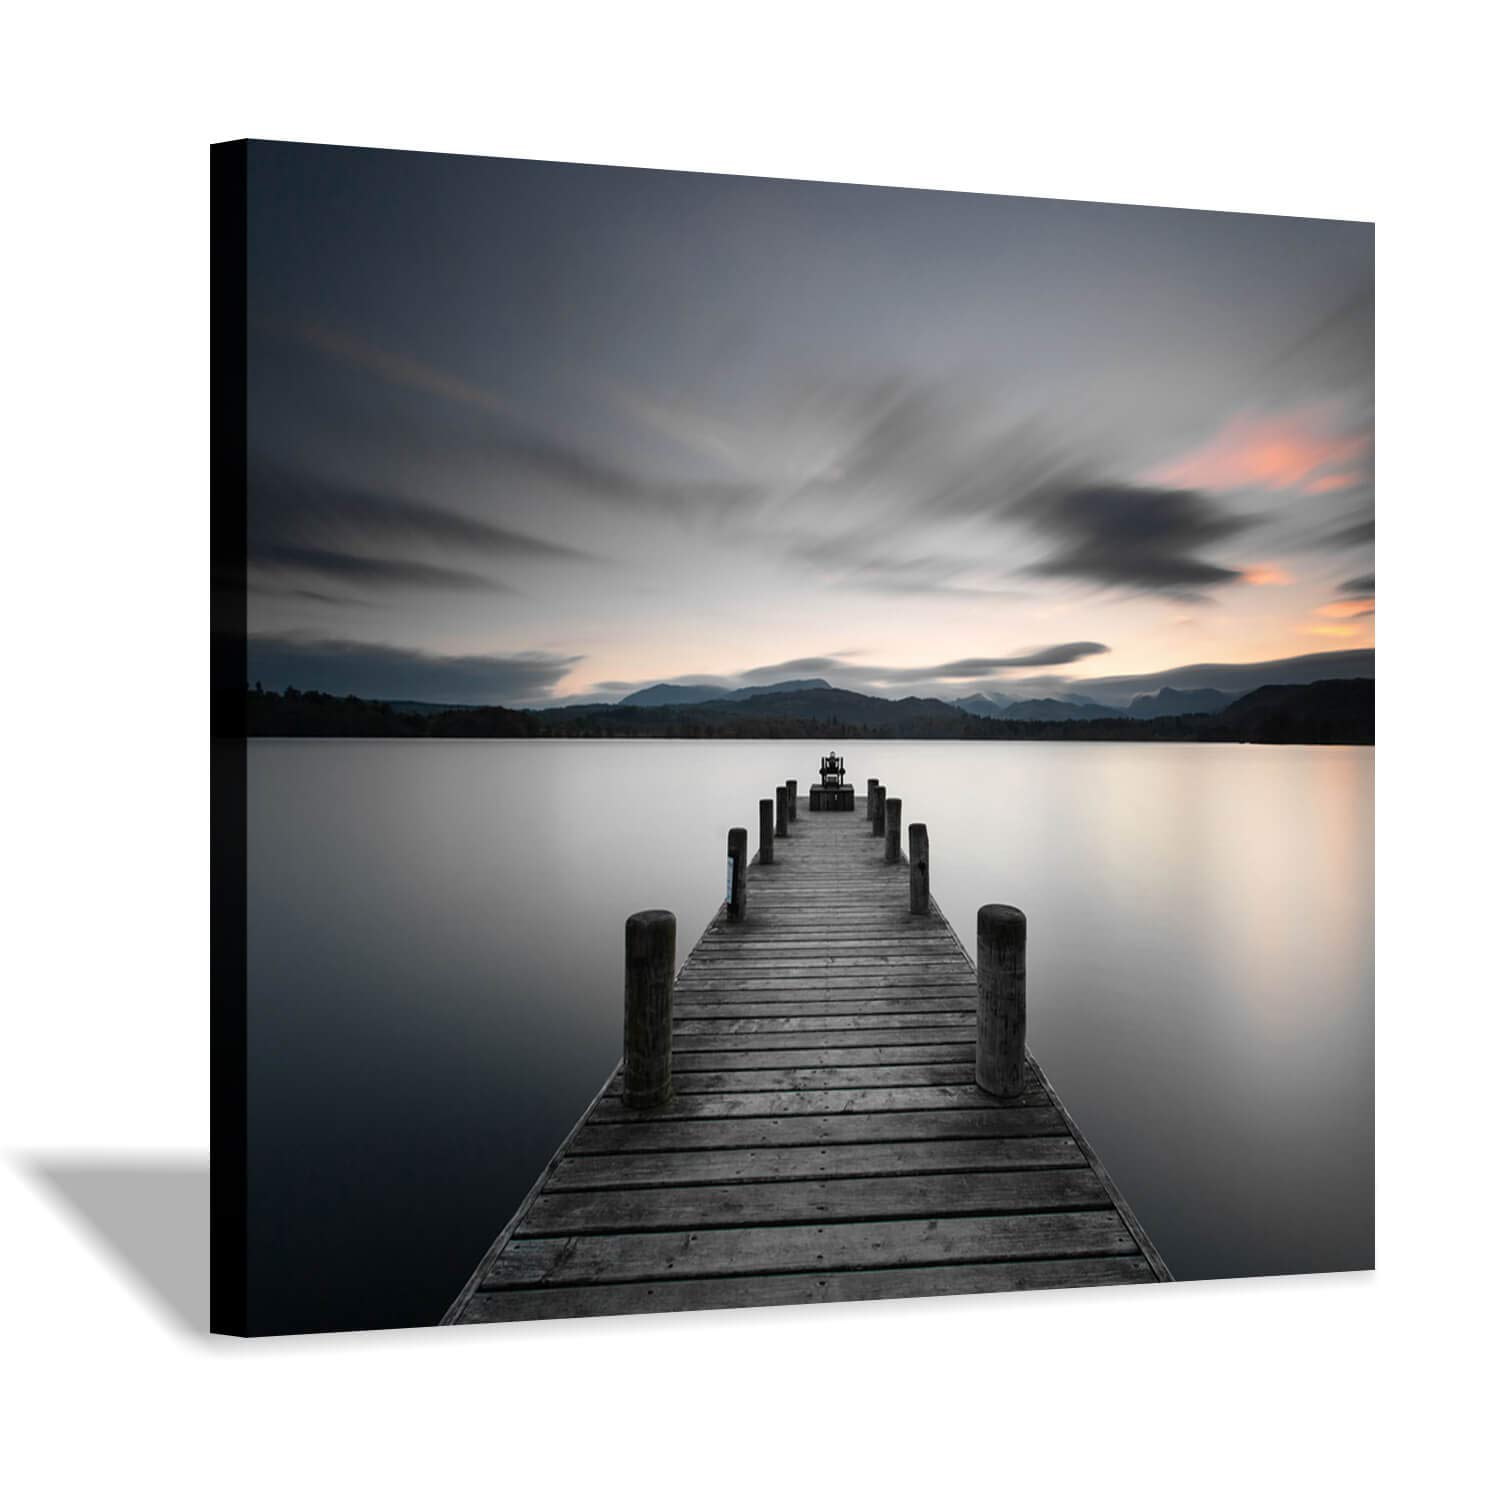 Lake Pier Canvas Wall Art: Vintage Wooden Dock Artwork Painting for Living Room (24'' x 18'' x 1 Panel)